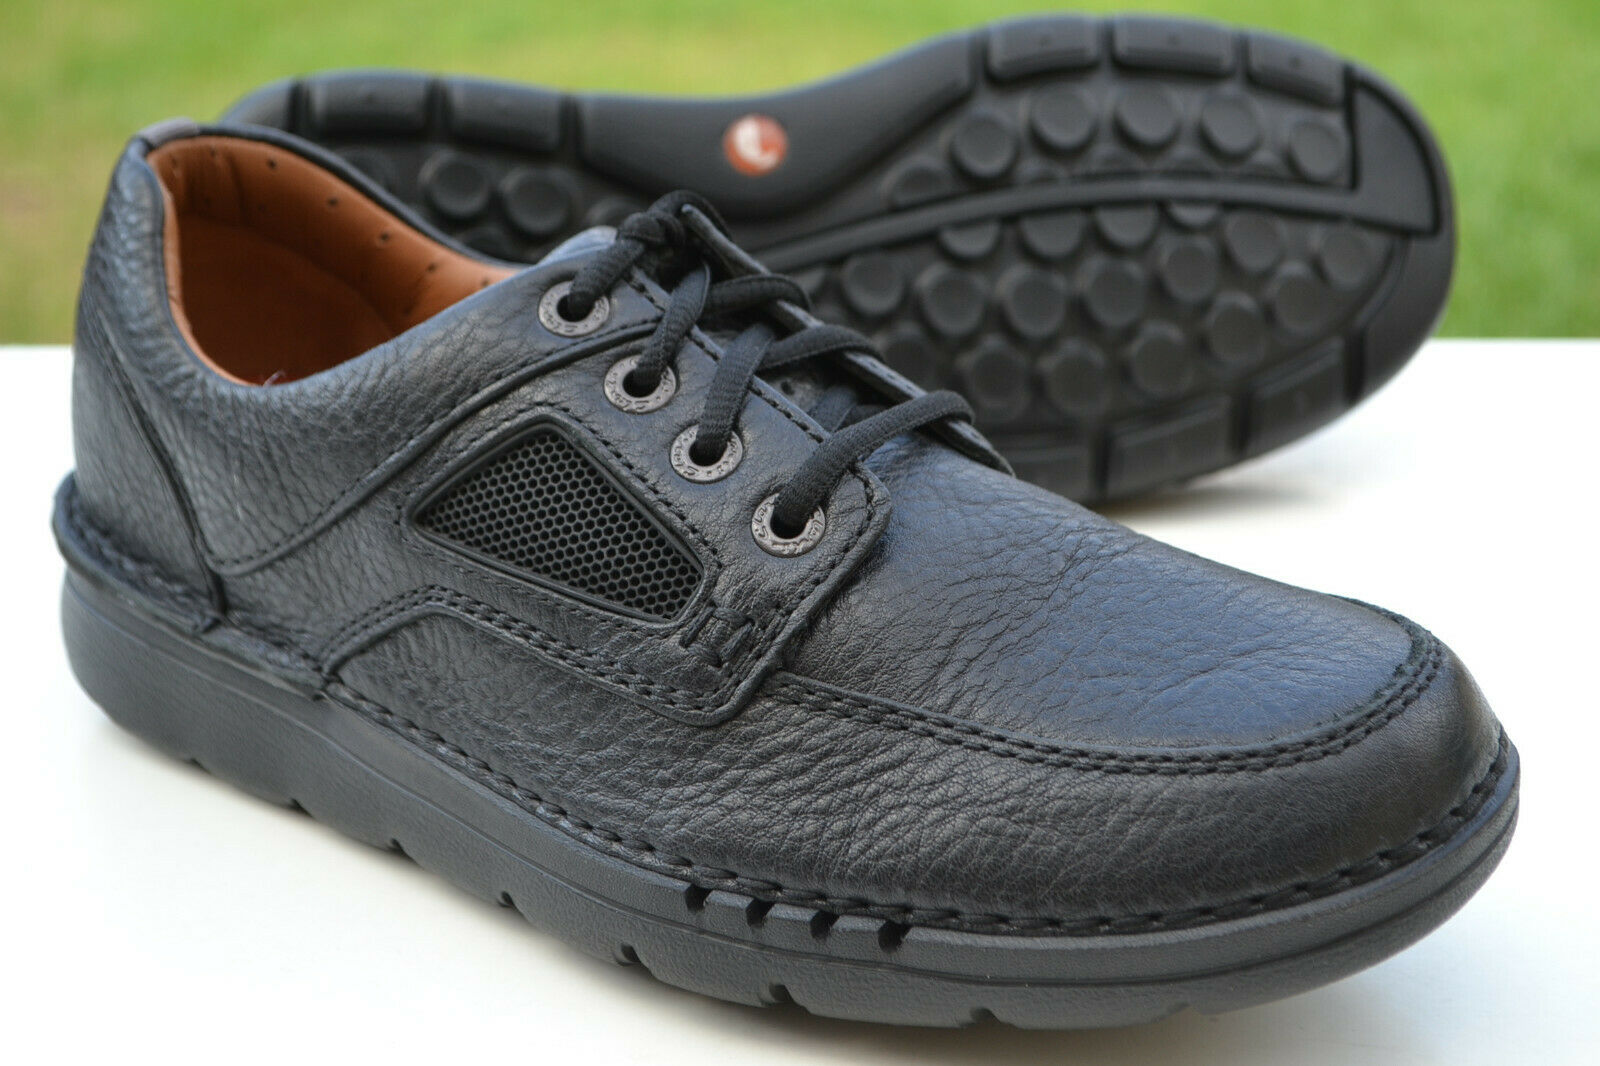 Clarks Mens Lightweight Casual Shoes UN NATURE TIME Black Leather UK 11 / 46